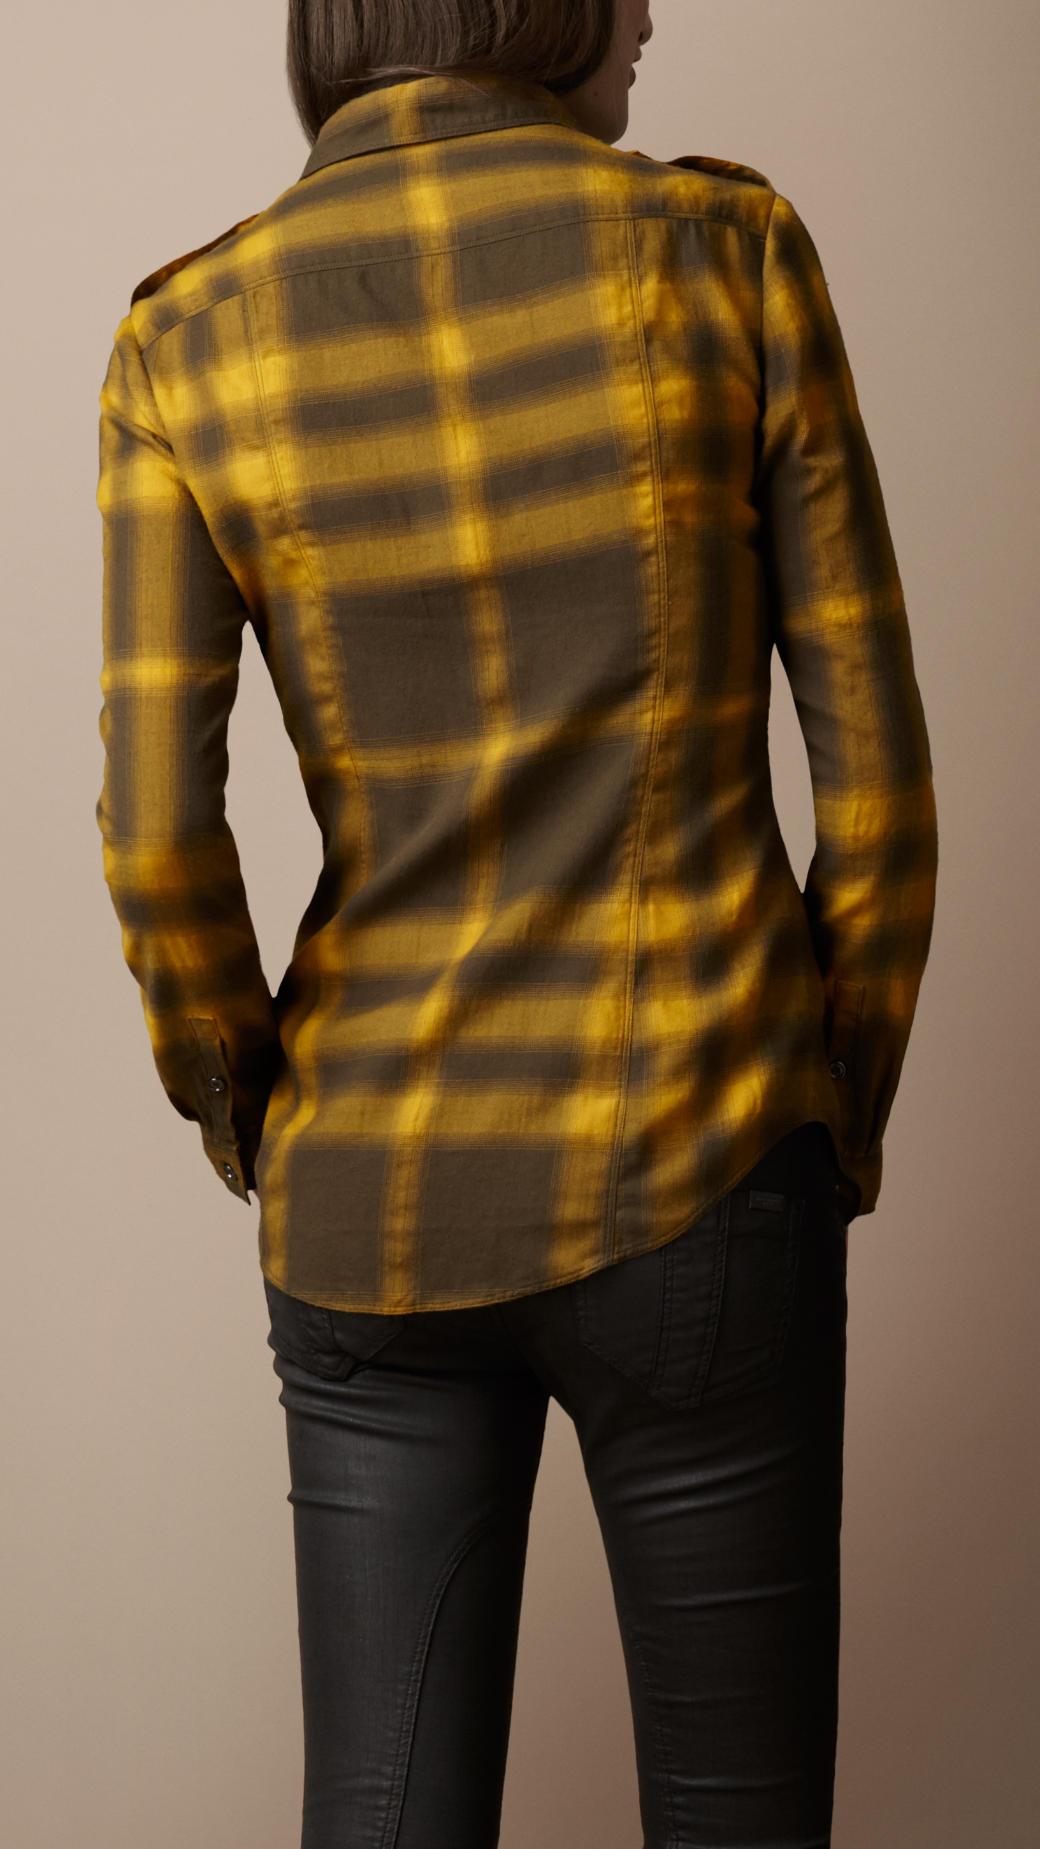 91ace4df3ad00a Lyst - Burberry Brit Fitted Ombre Check Shirt in Yellow